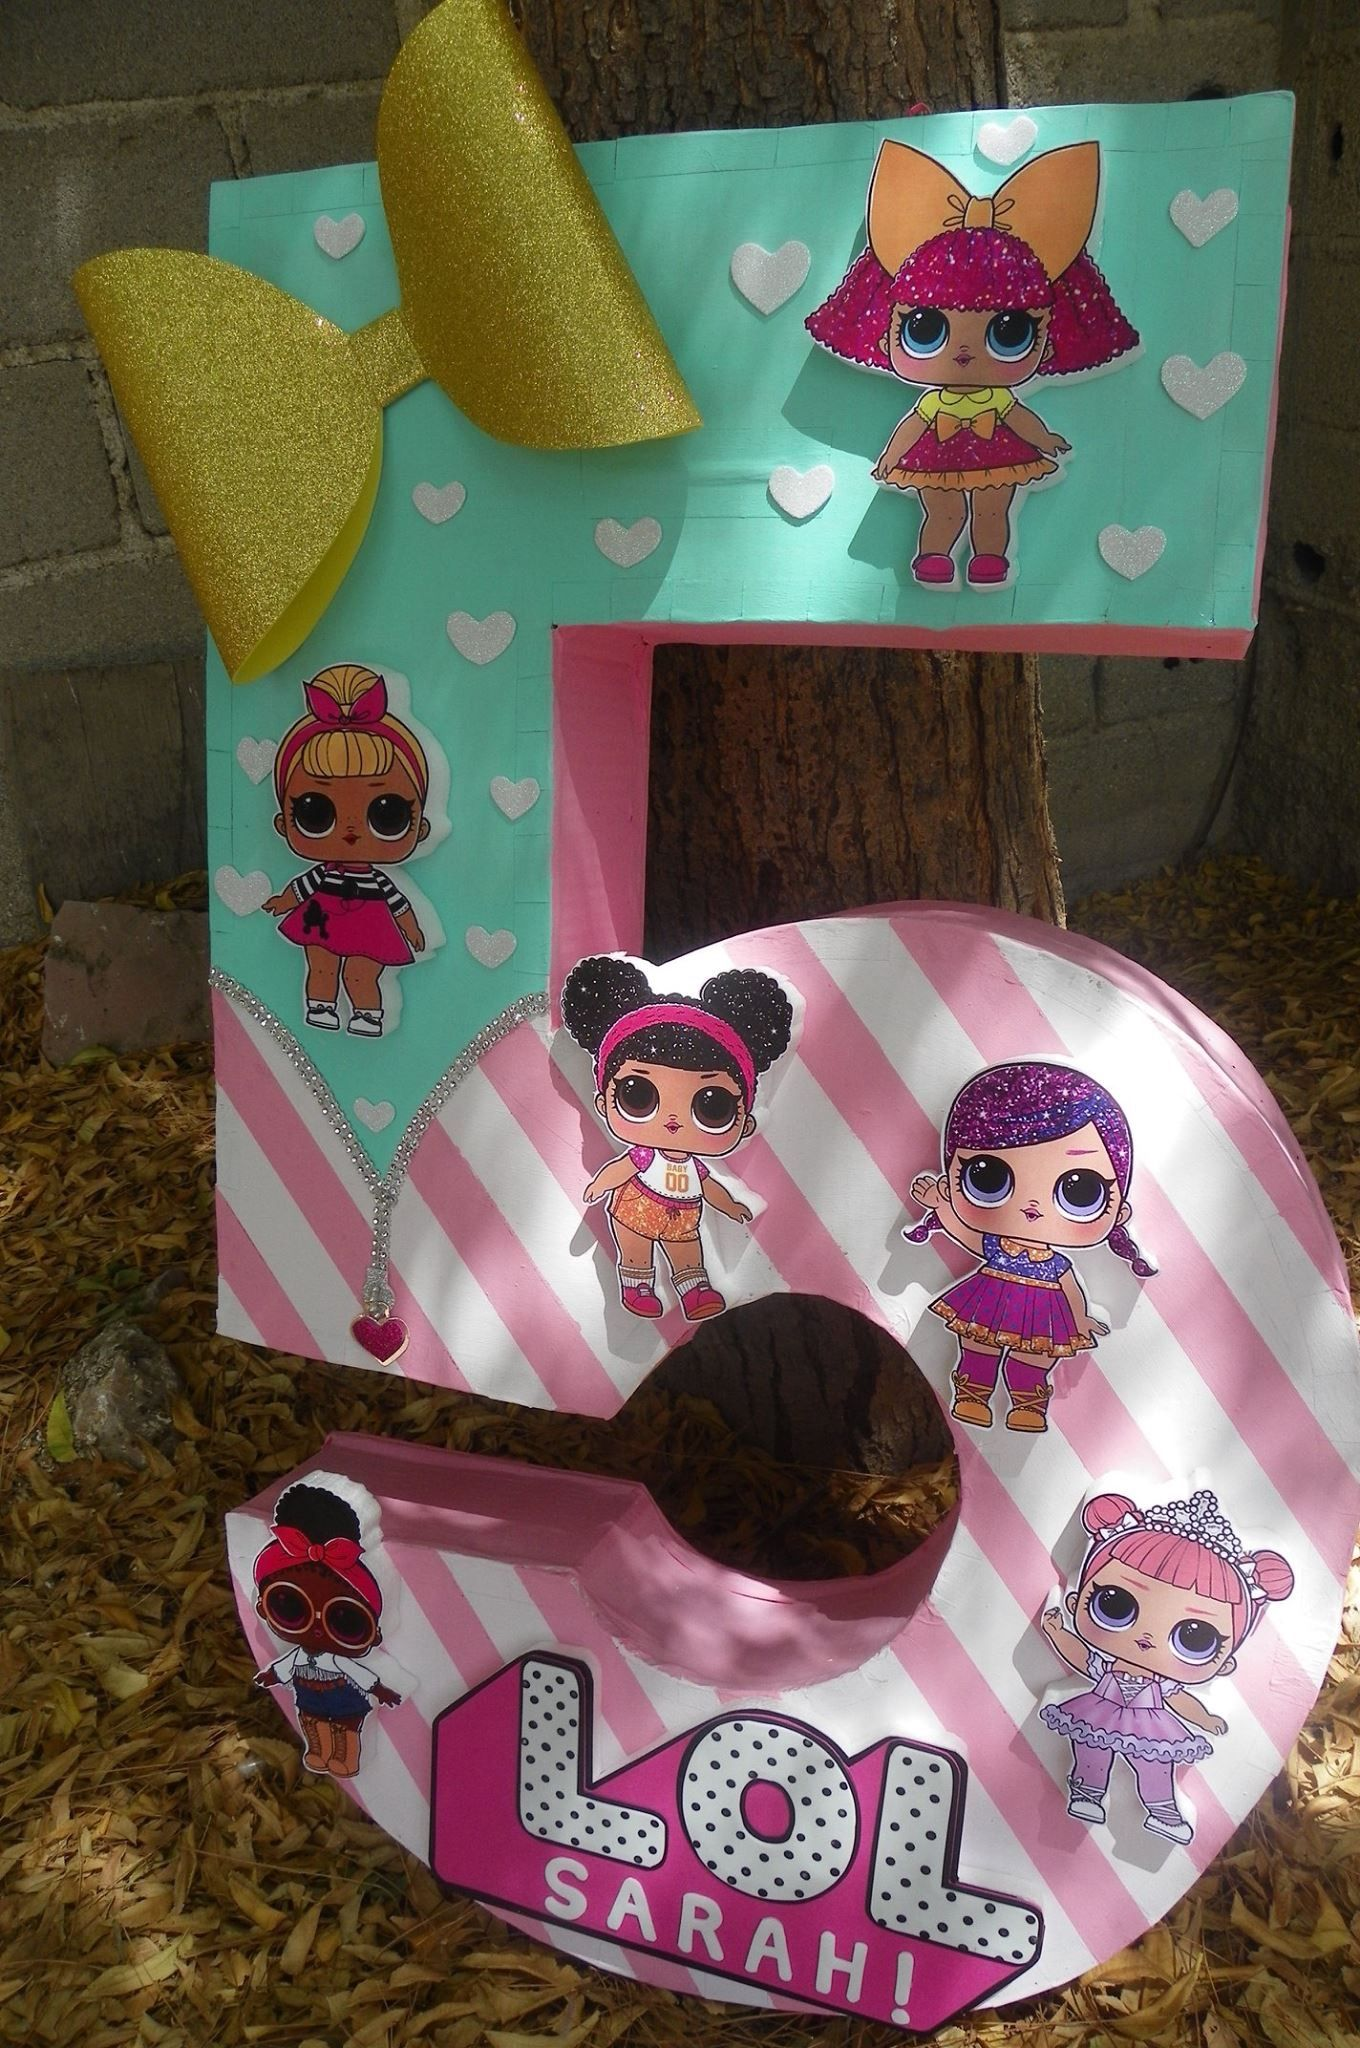 Lol LOL SURPRISE DOLLS 4 SLEEP MASKS BIRTHDAY PARTY FAVORS SUPPLIES GIFT L.O.L